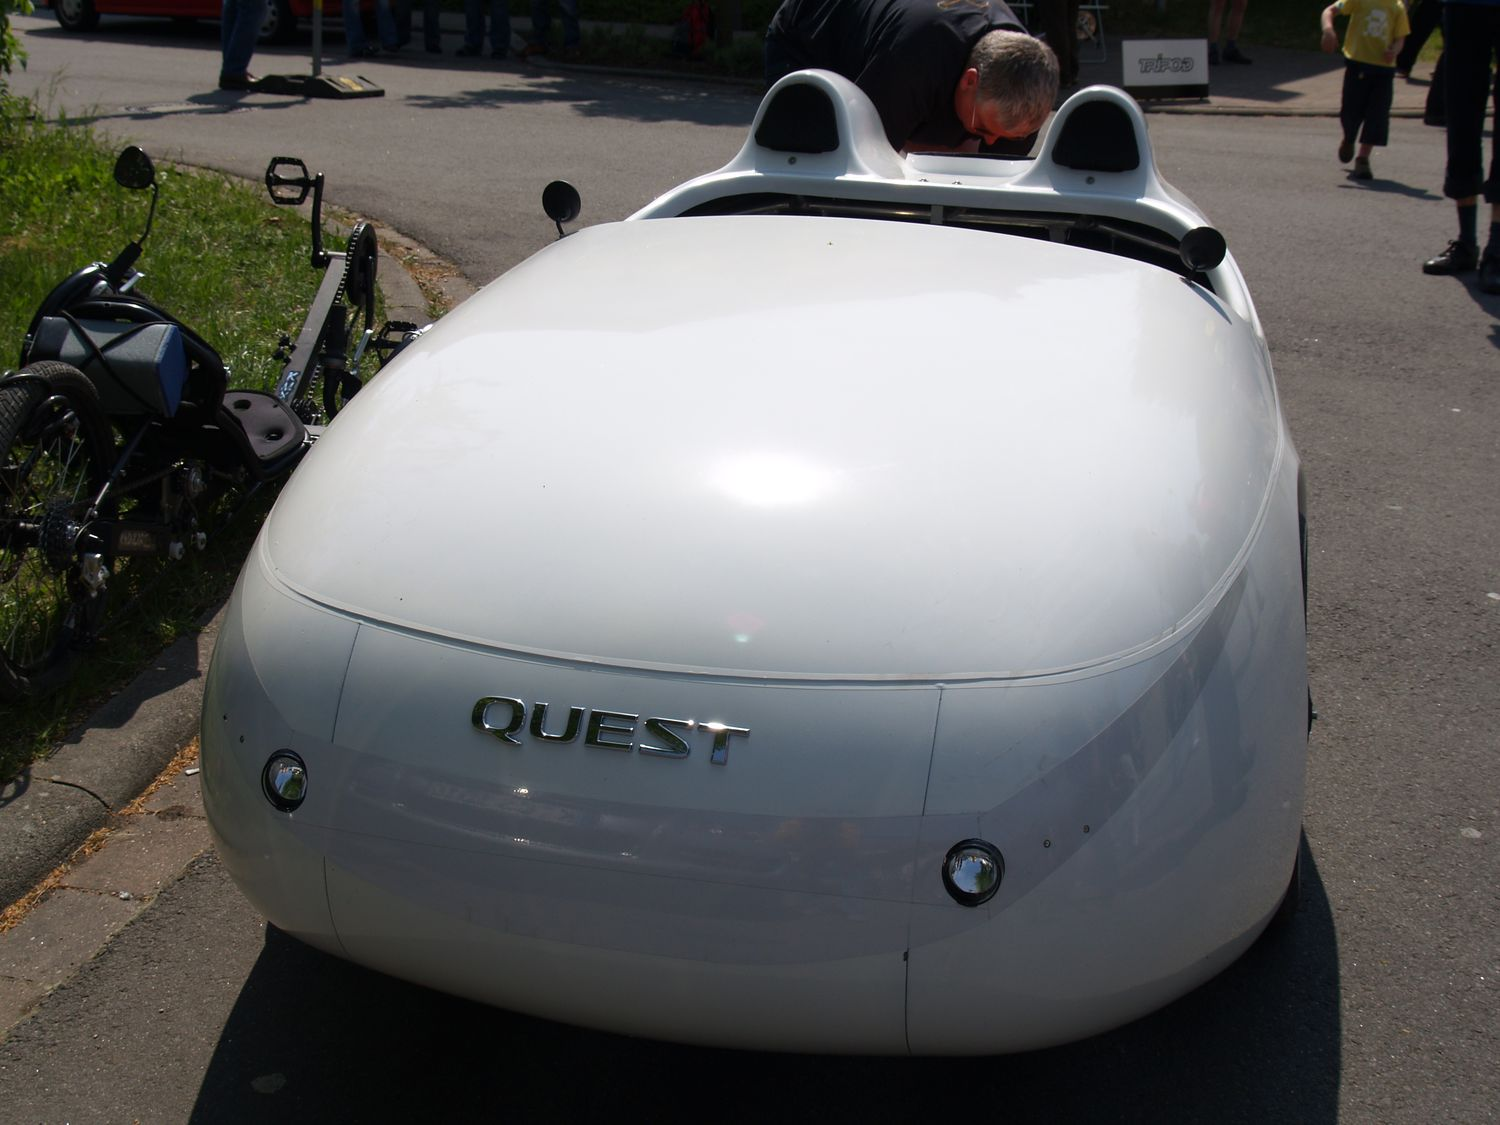 duo-quest-velomobile-5